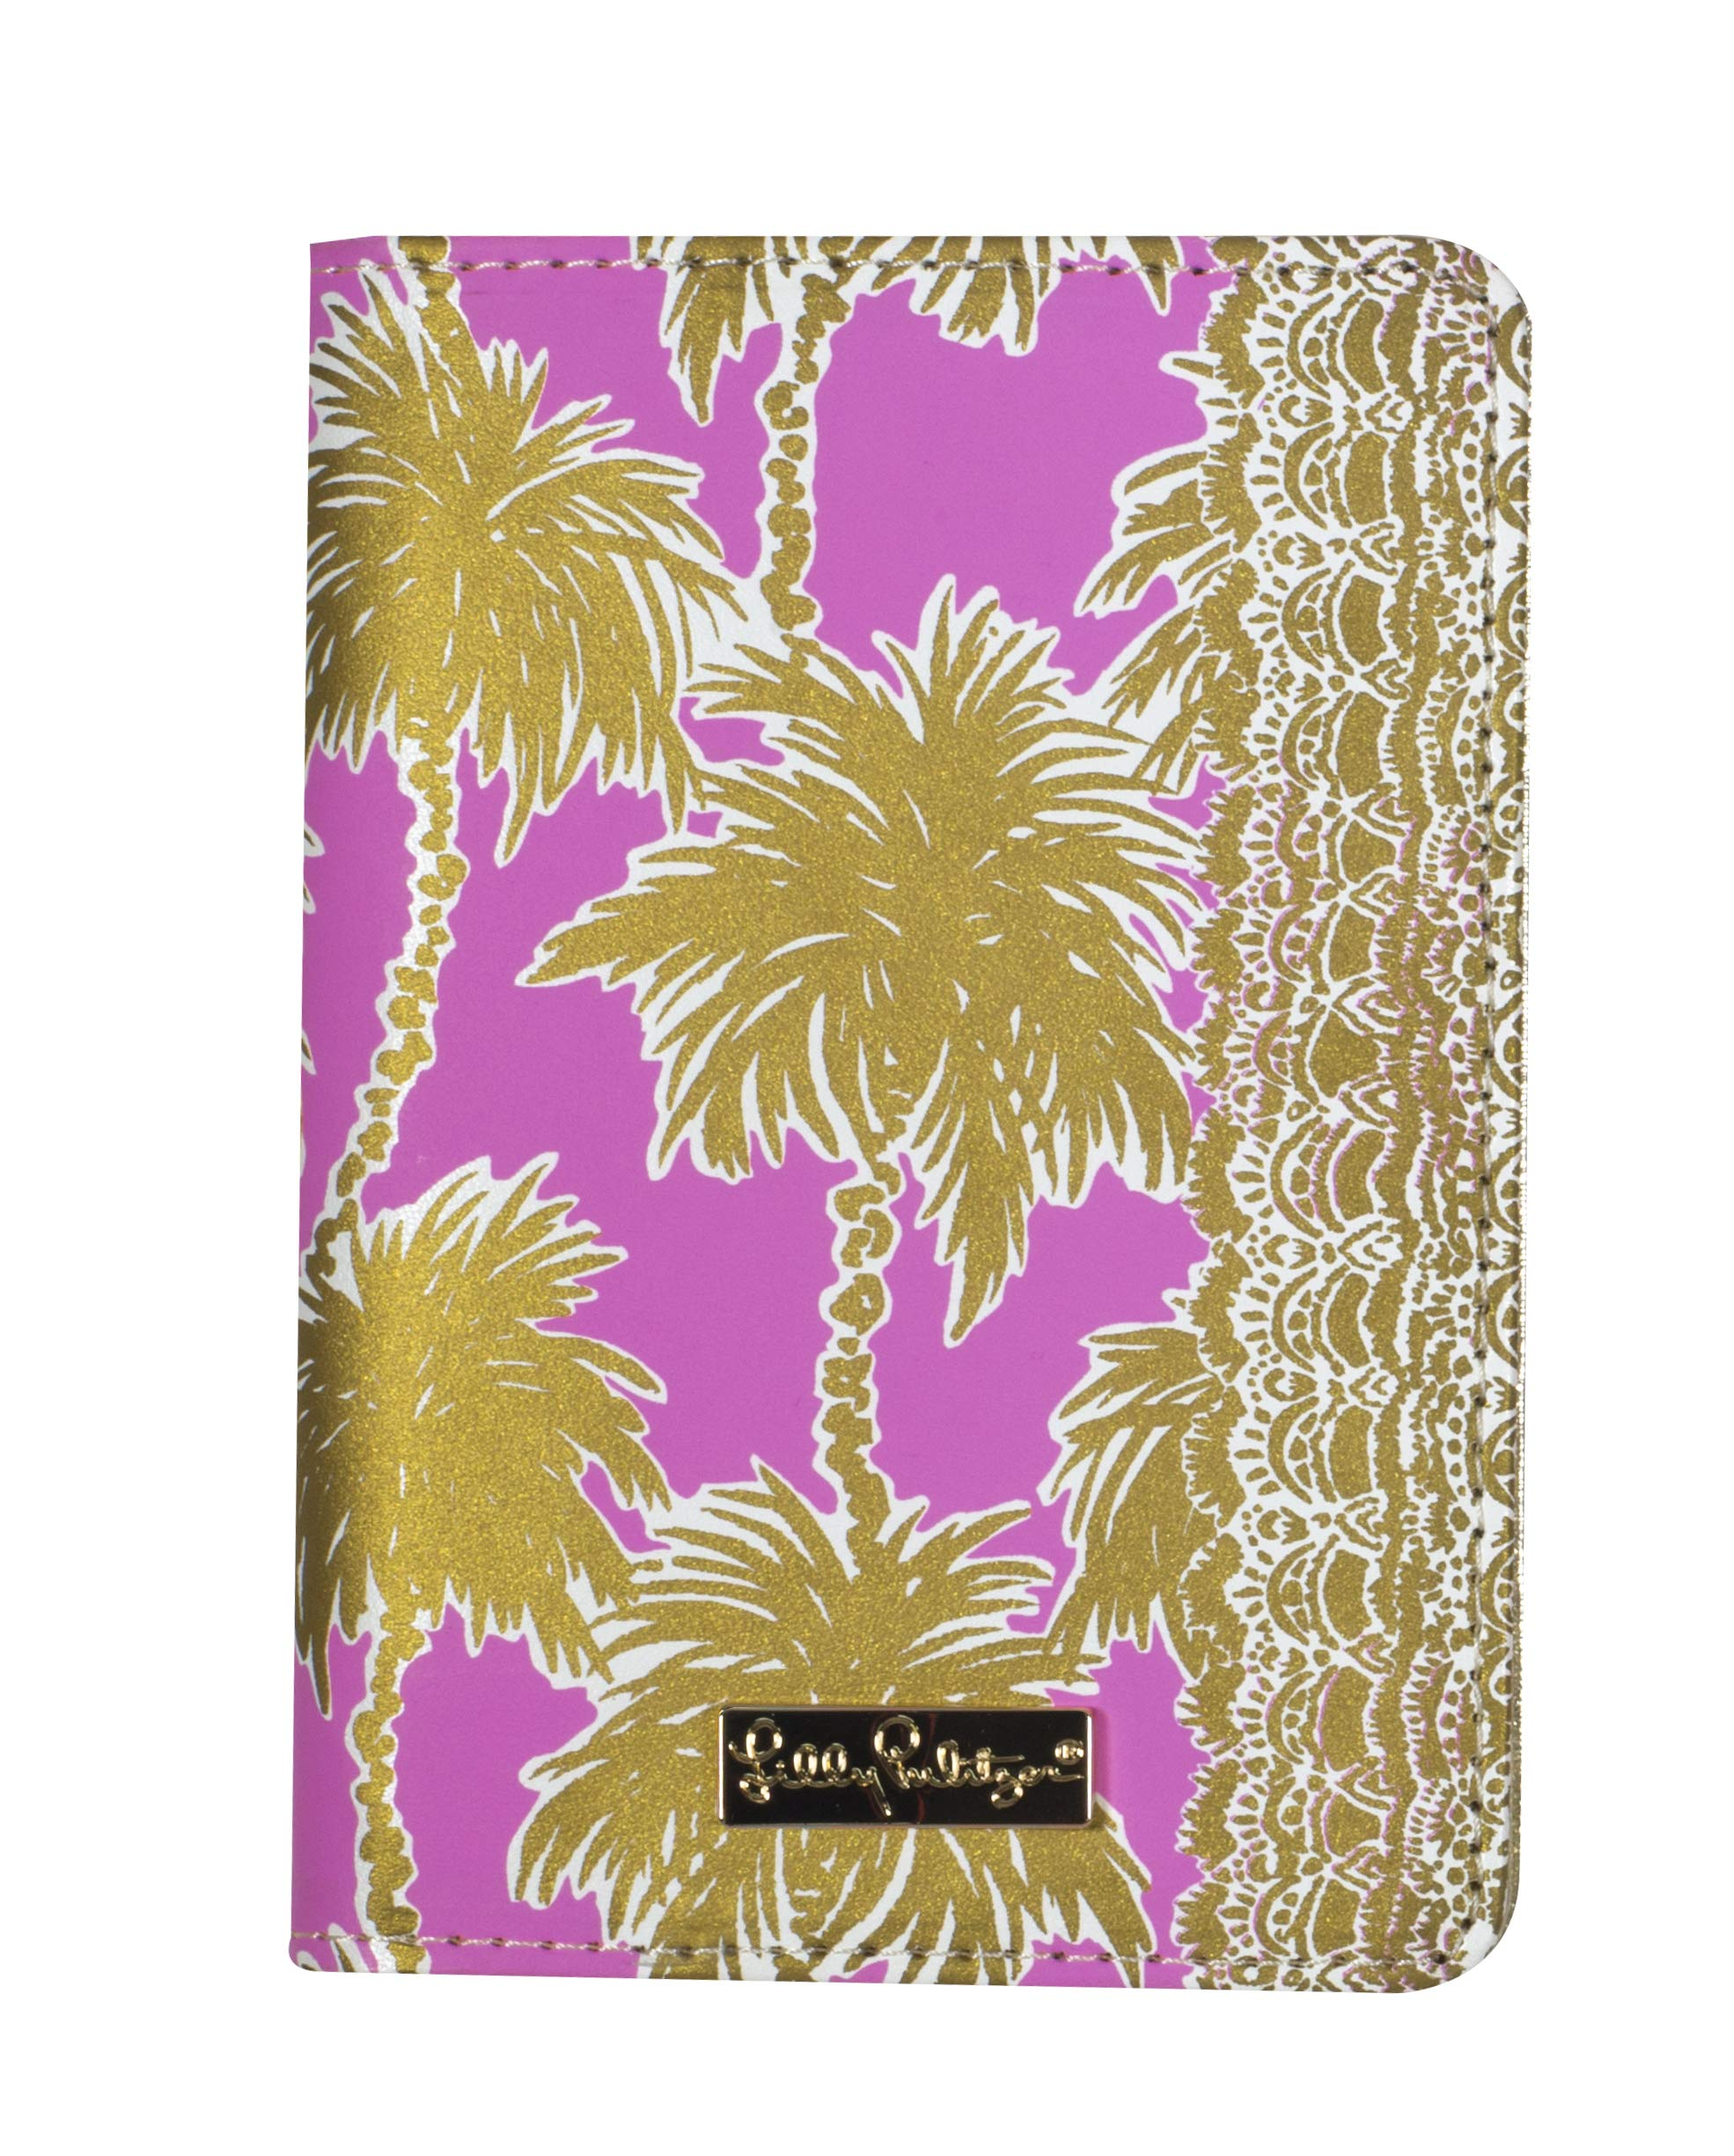 Lilly Pulitzer Passport Cover / Holder, Metallic Palms by Lilly Pulitzer